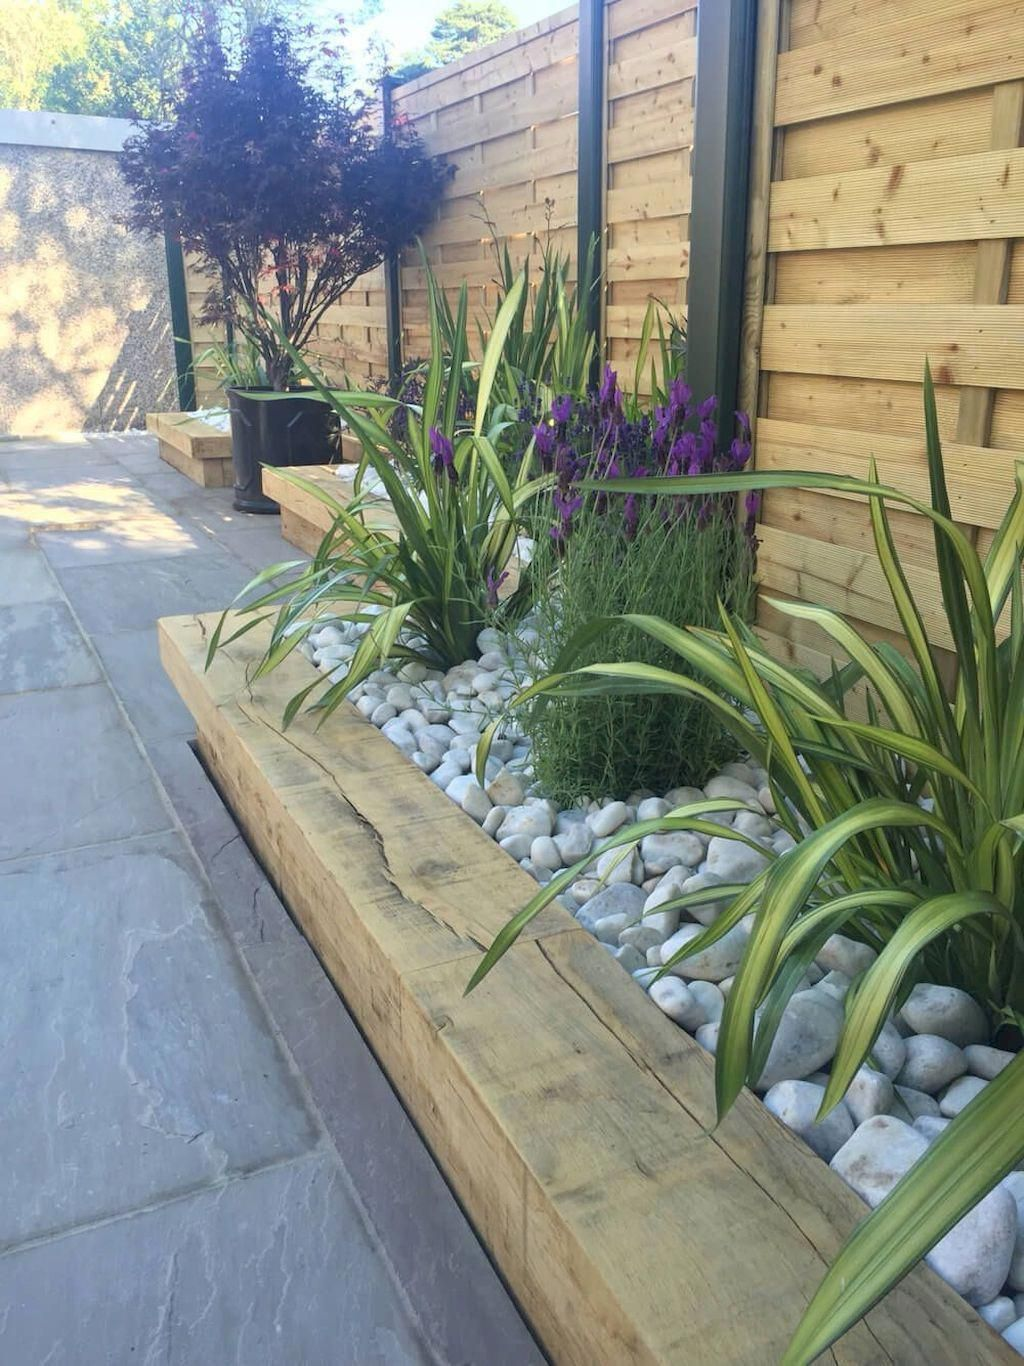 50 modern front yard designs and ideas renoguide on backyard landscape architecture inspirations id=89969